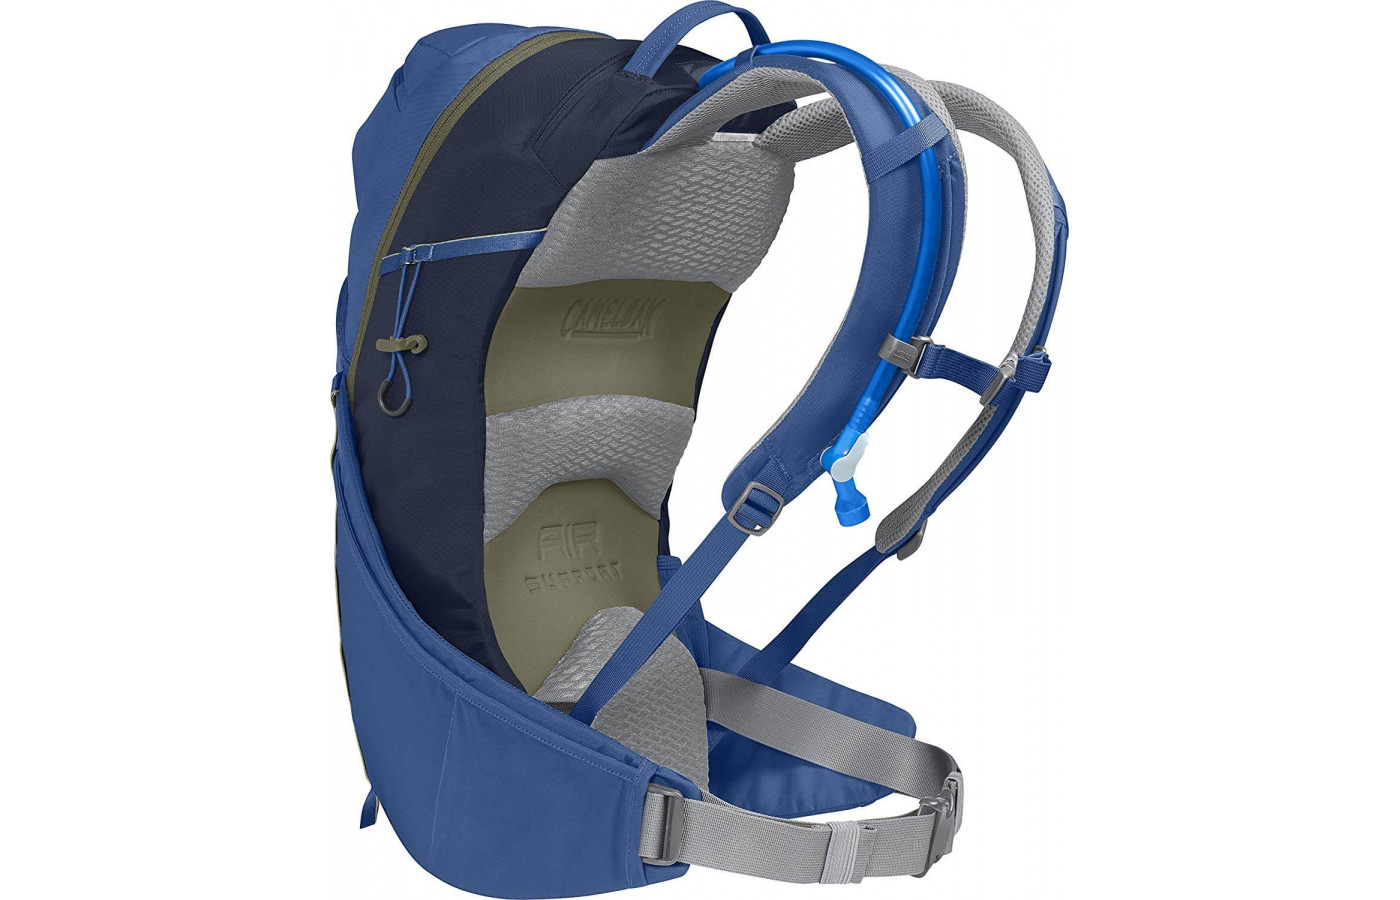 The Fourteener 20 features the Air Support back pannel